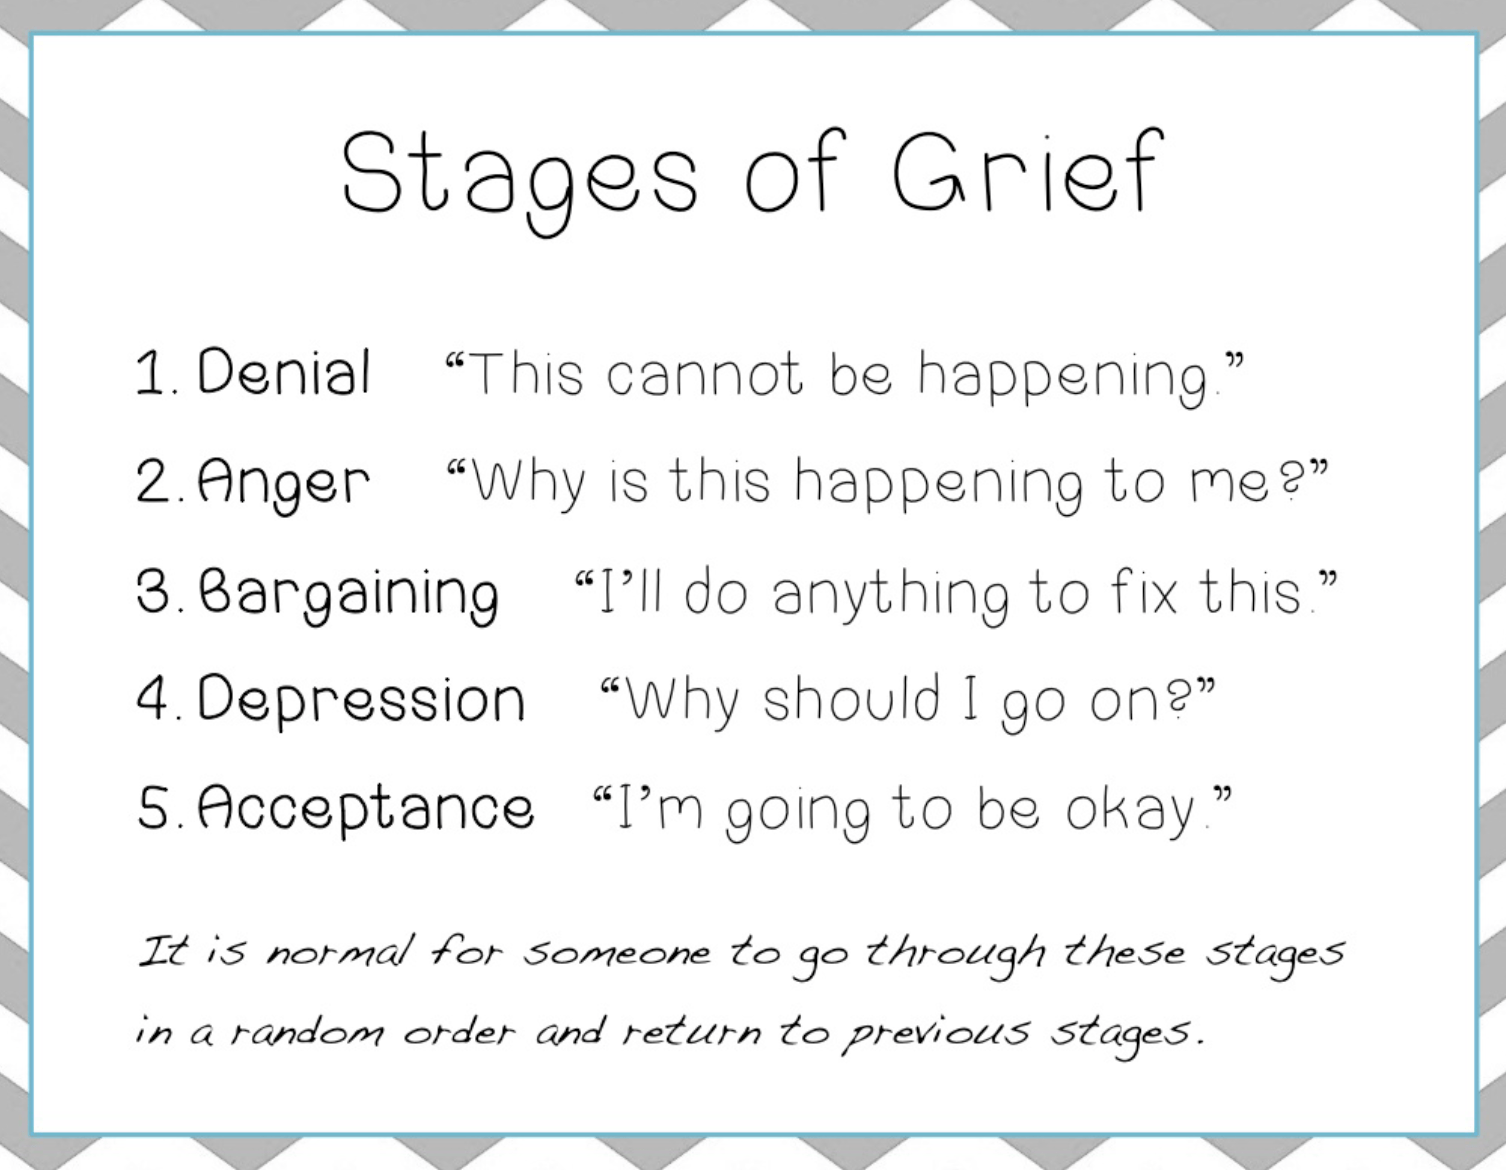 stages of grief infographic